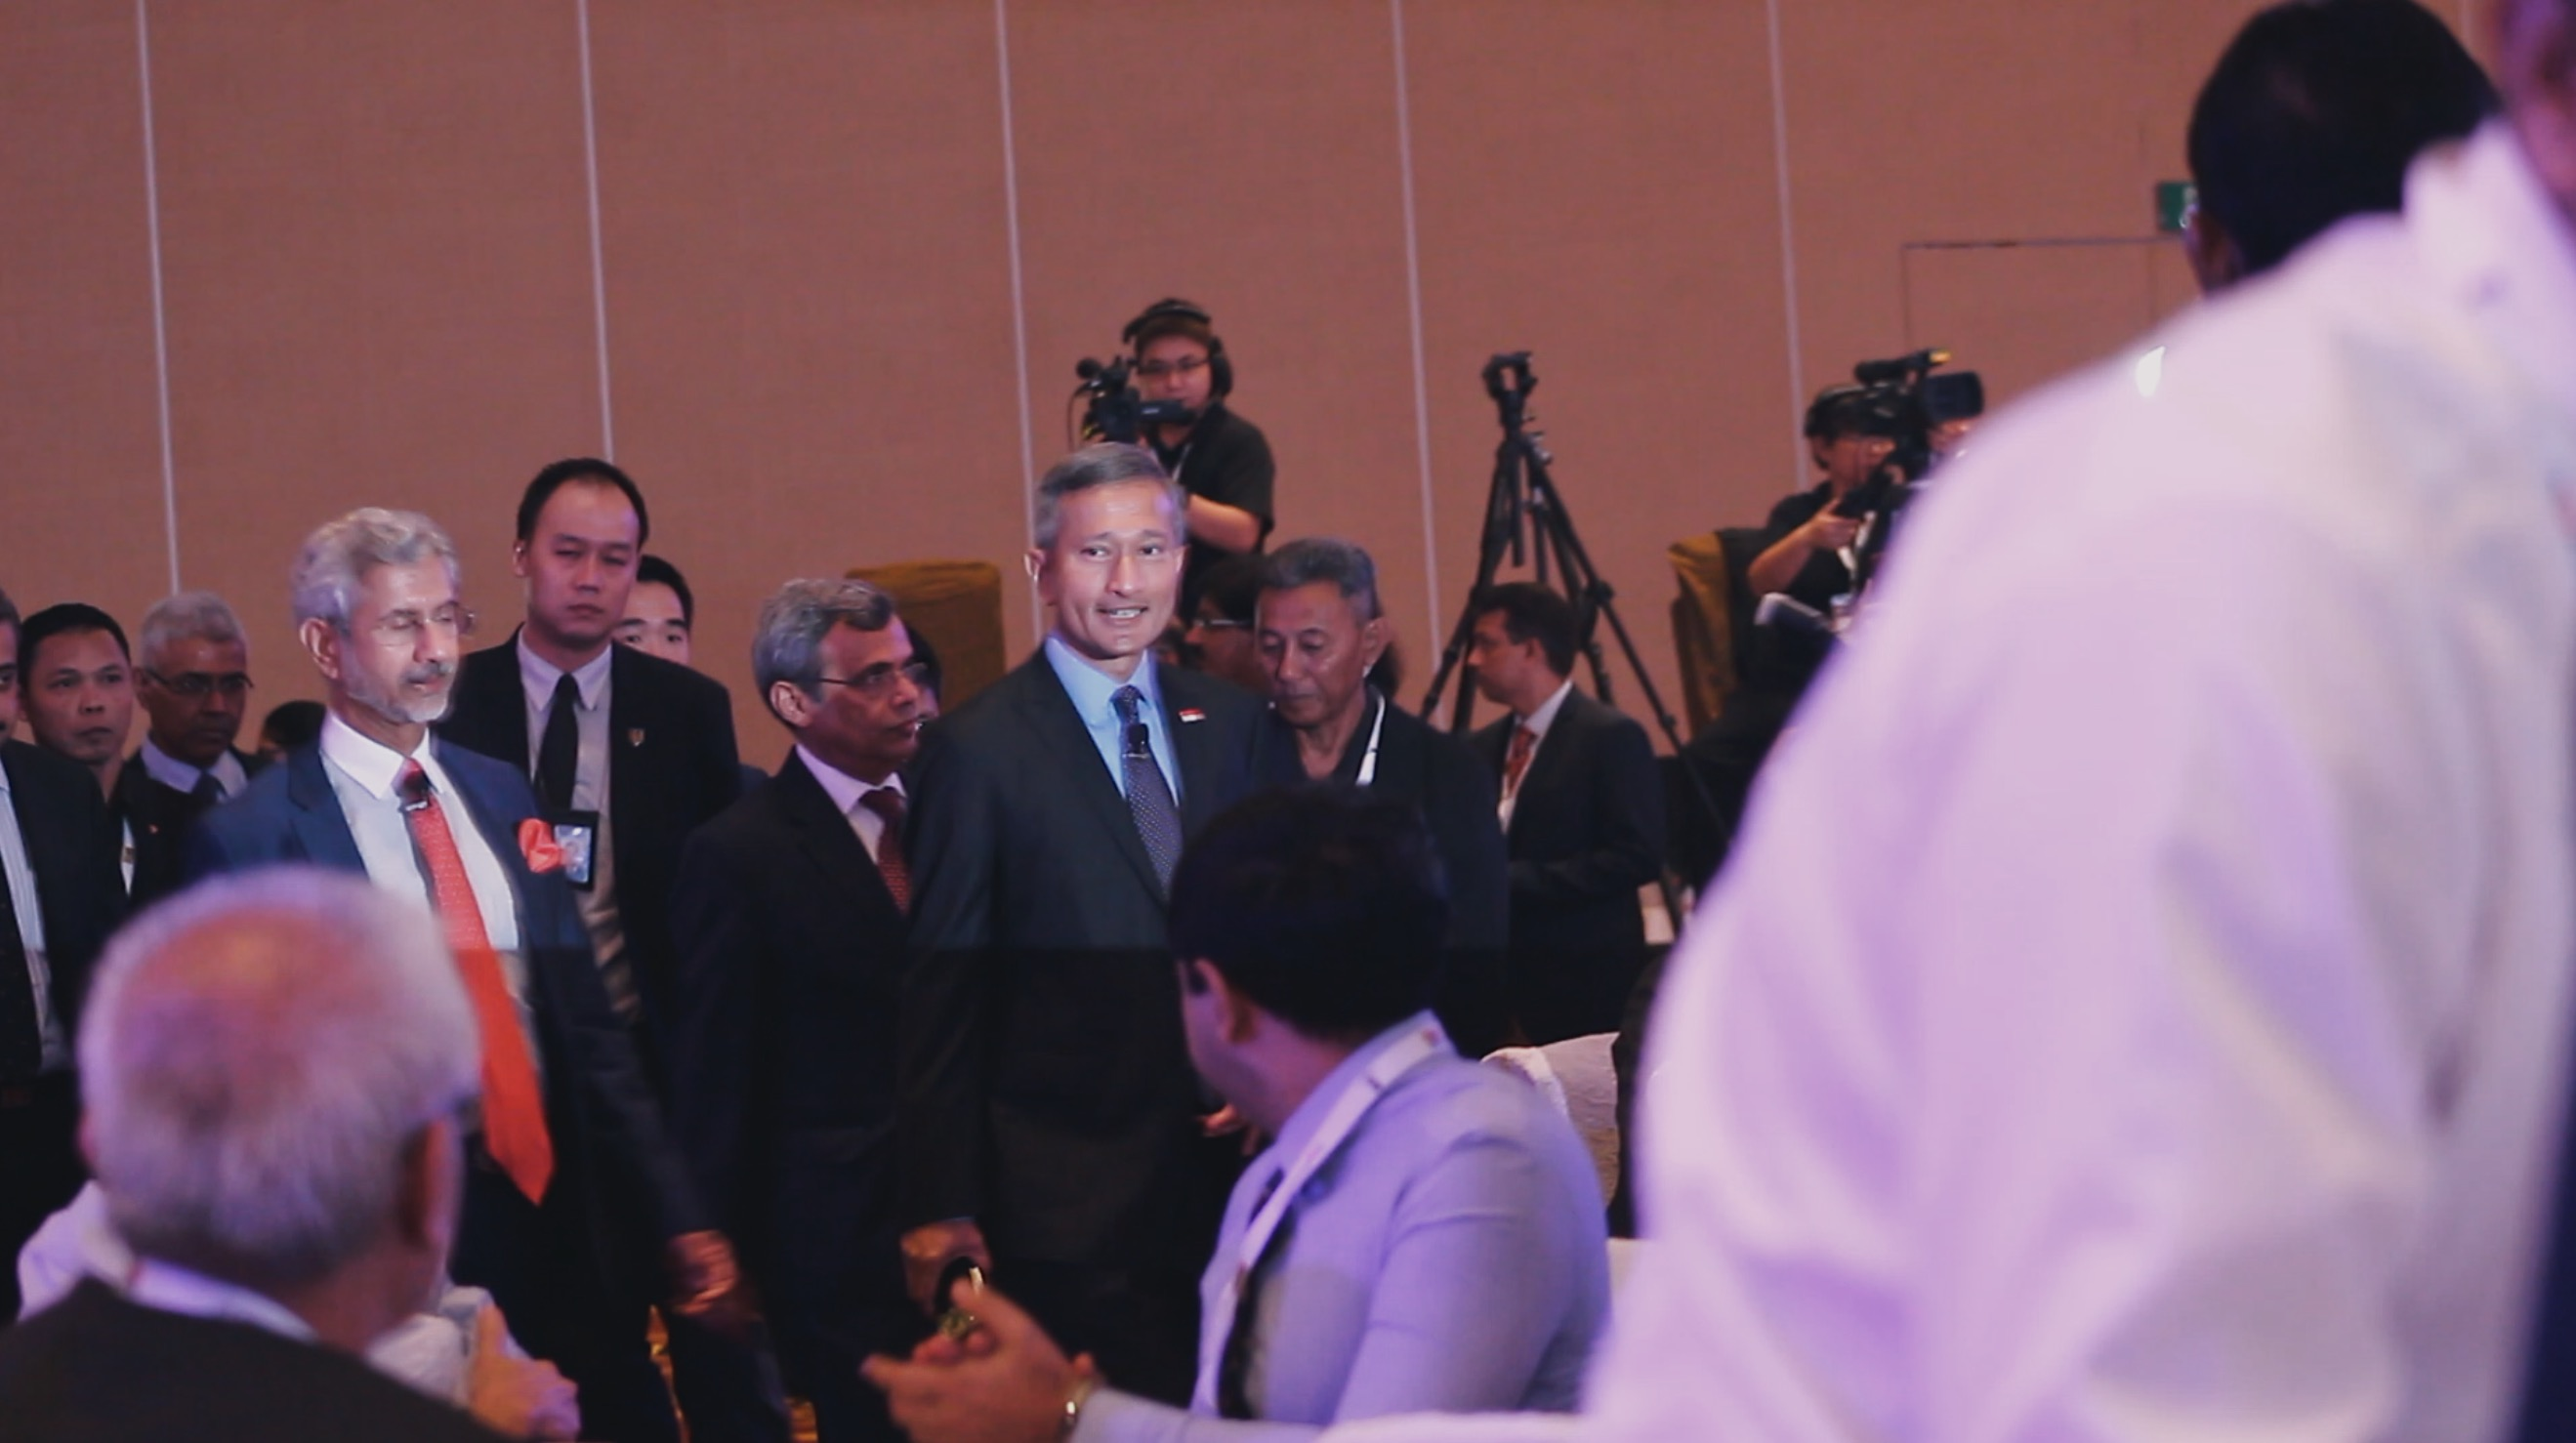 Dr Subrahmanyam Jaishankar, External Affairs Minister, India, arriving with Dr Vivian Balakrishnan, Minister for Foreign Affairs, Singapore. Photo: Connected to India